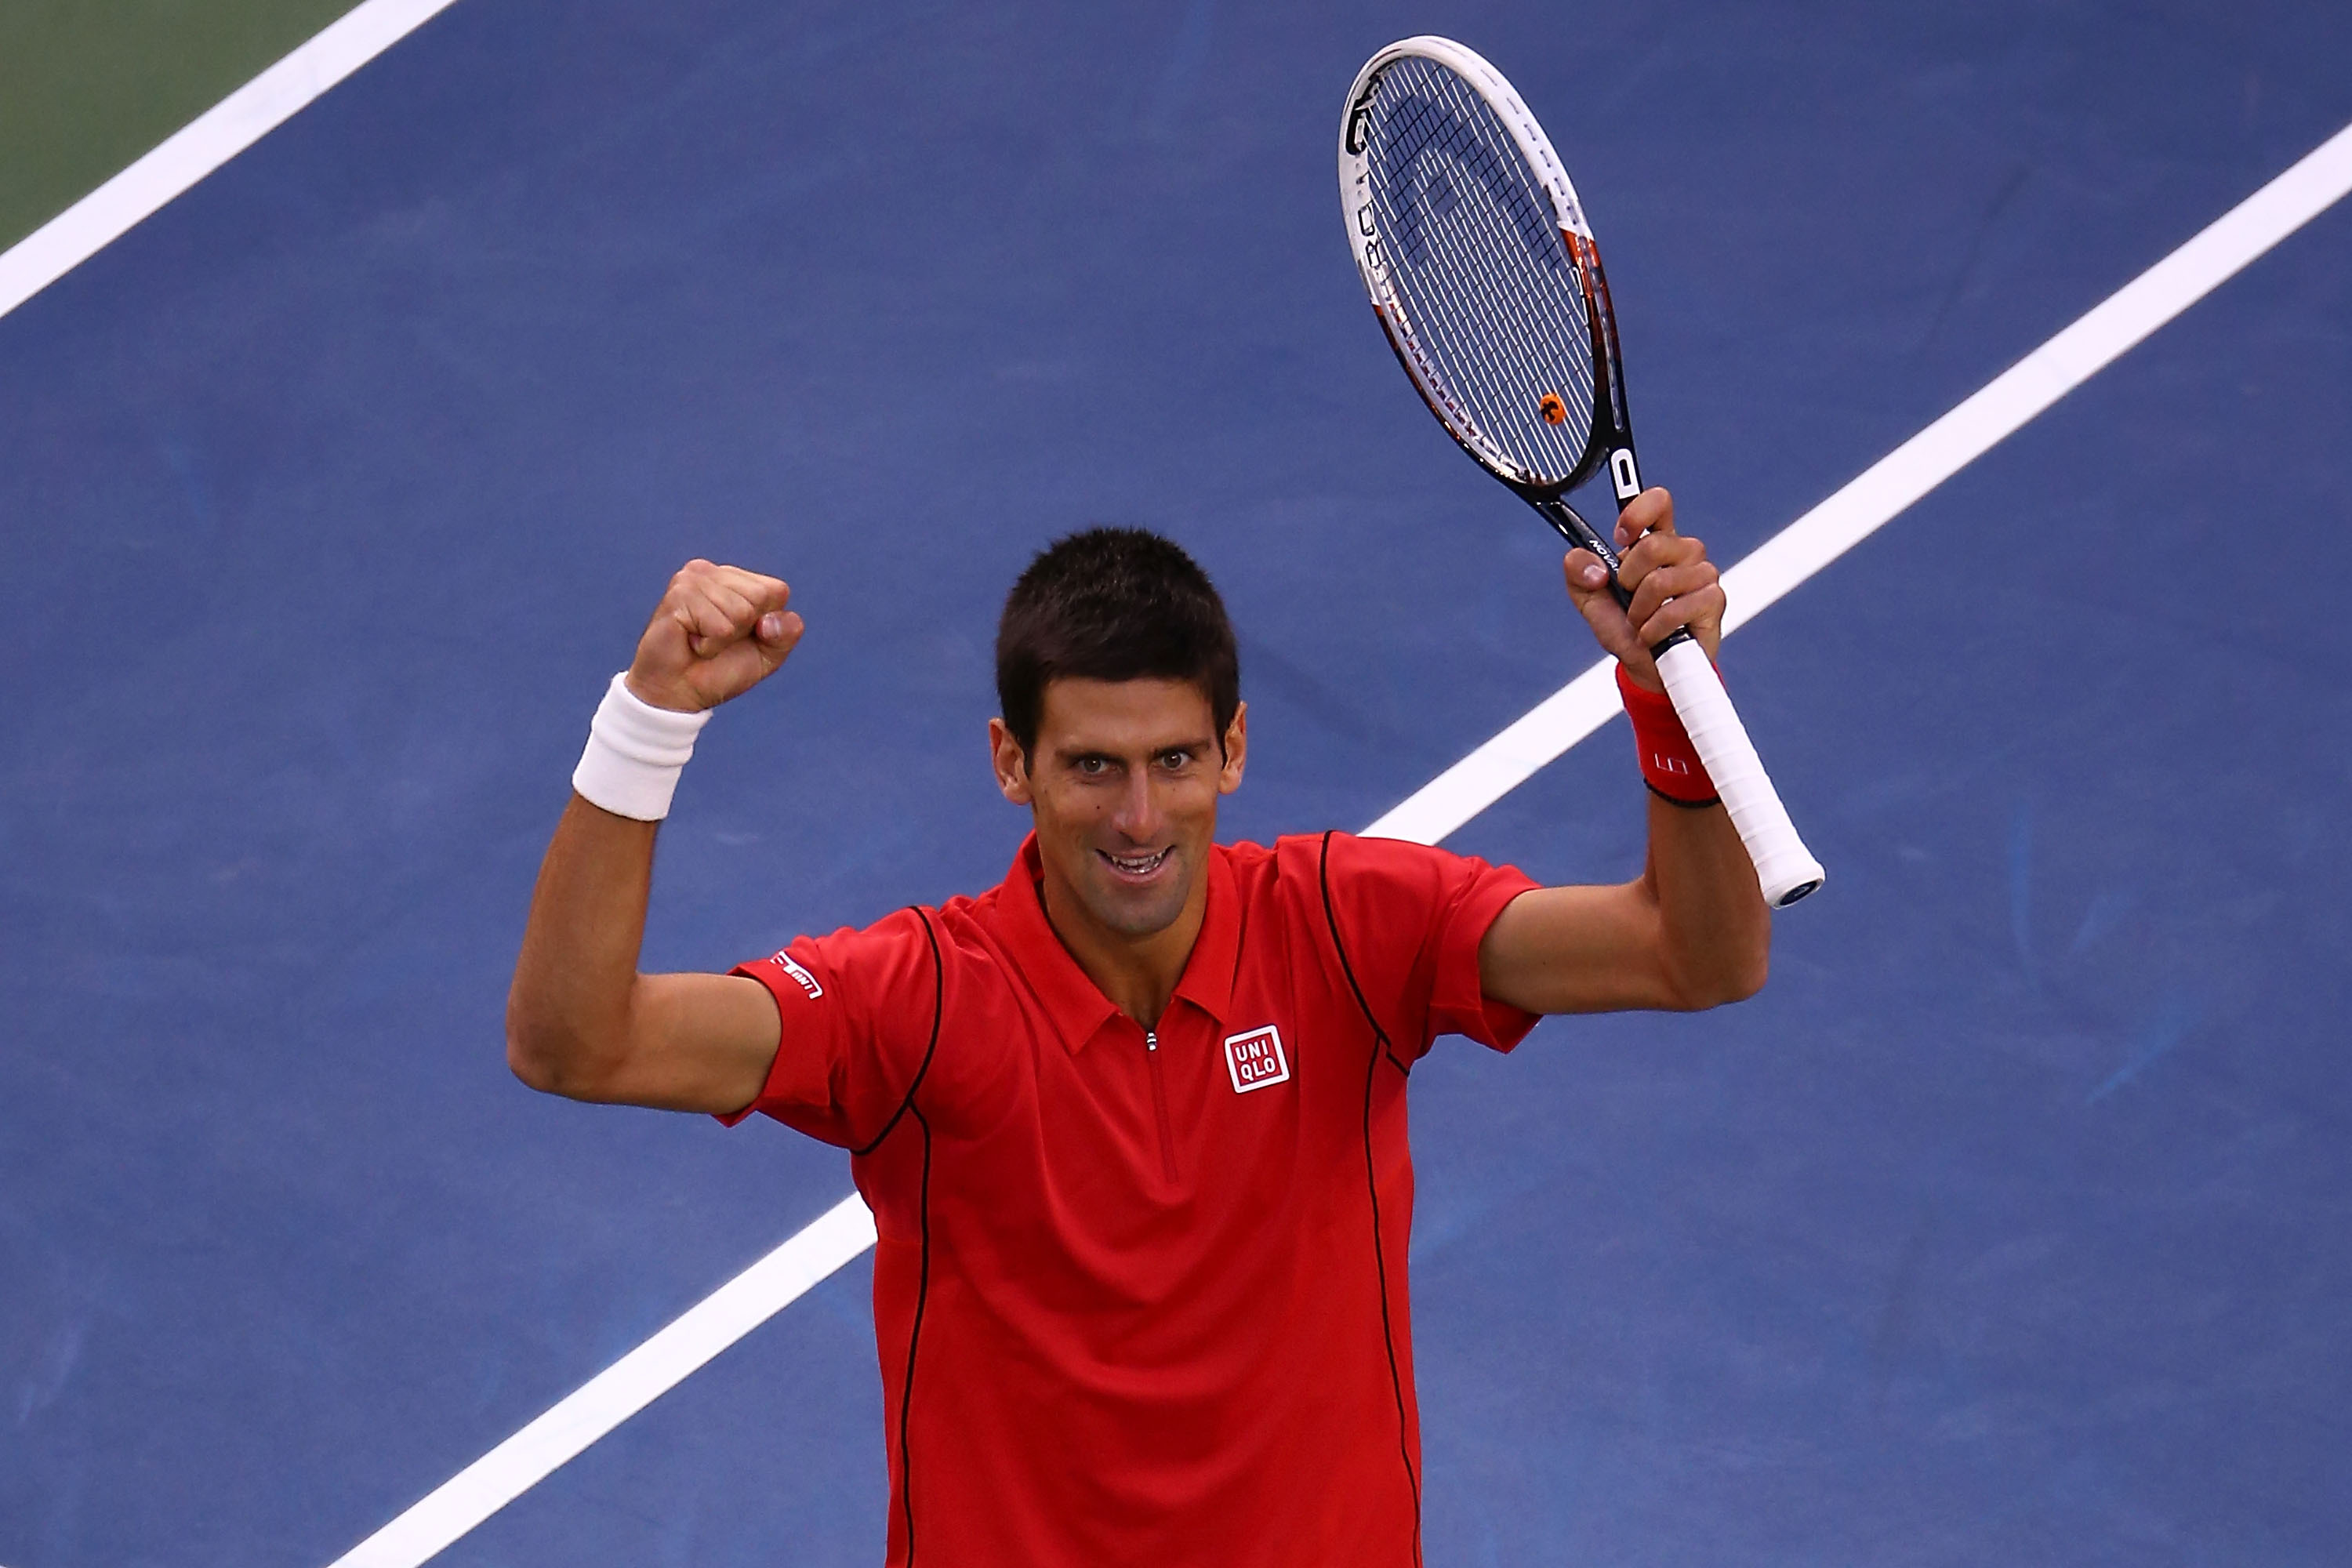 Novak Djokovic Vs Li Na Tennis Greats Have Fun With Charity Match Bleacher Report Latest News Videos And Highlights